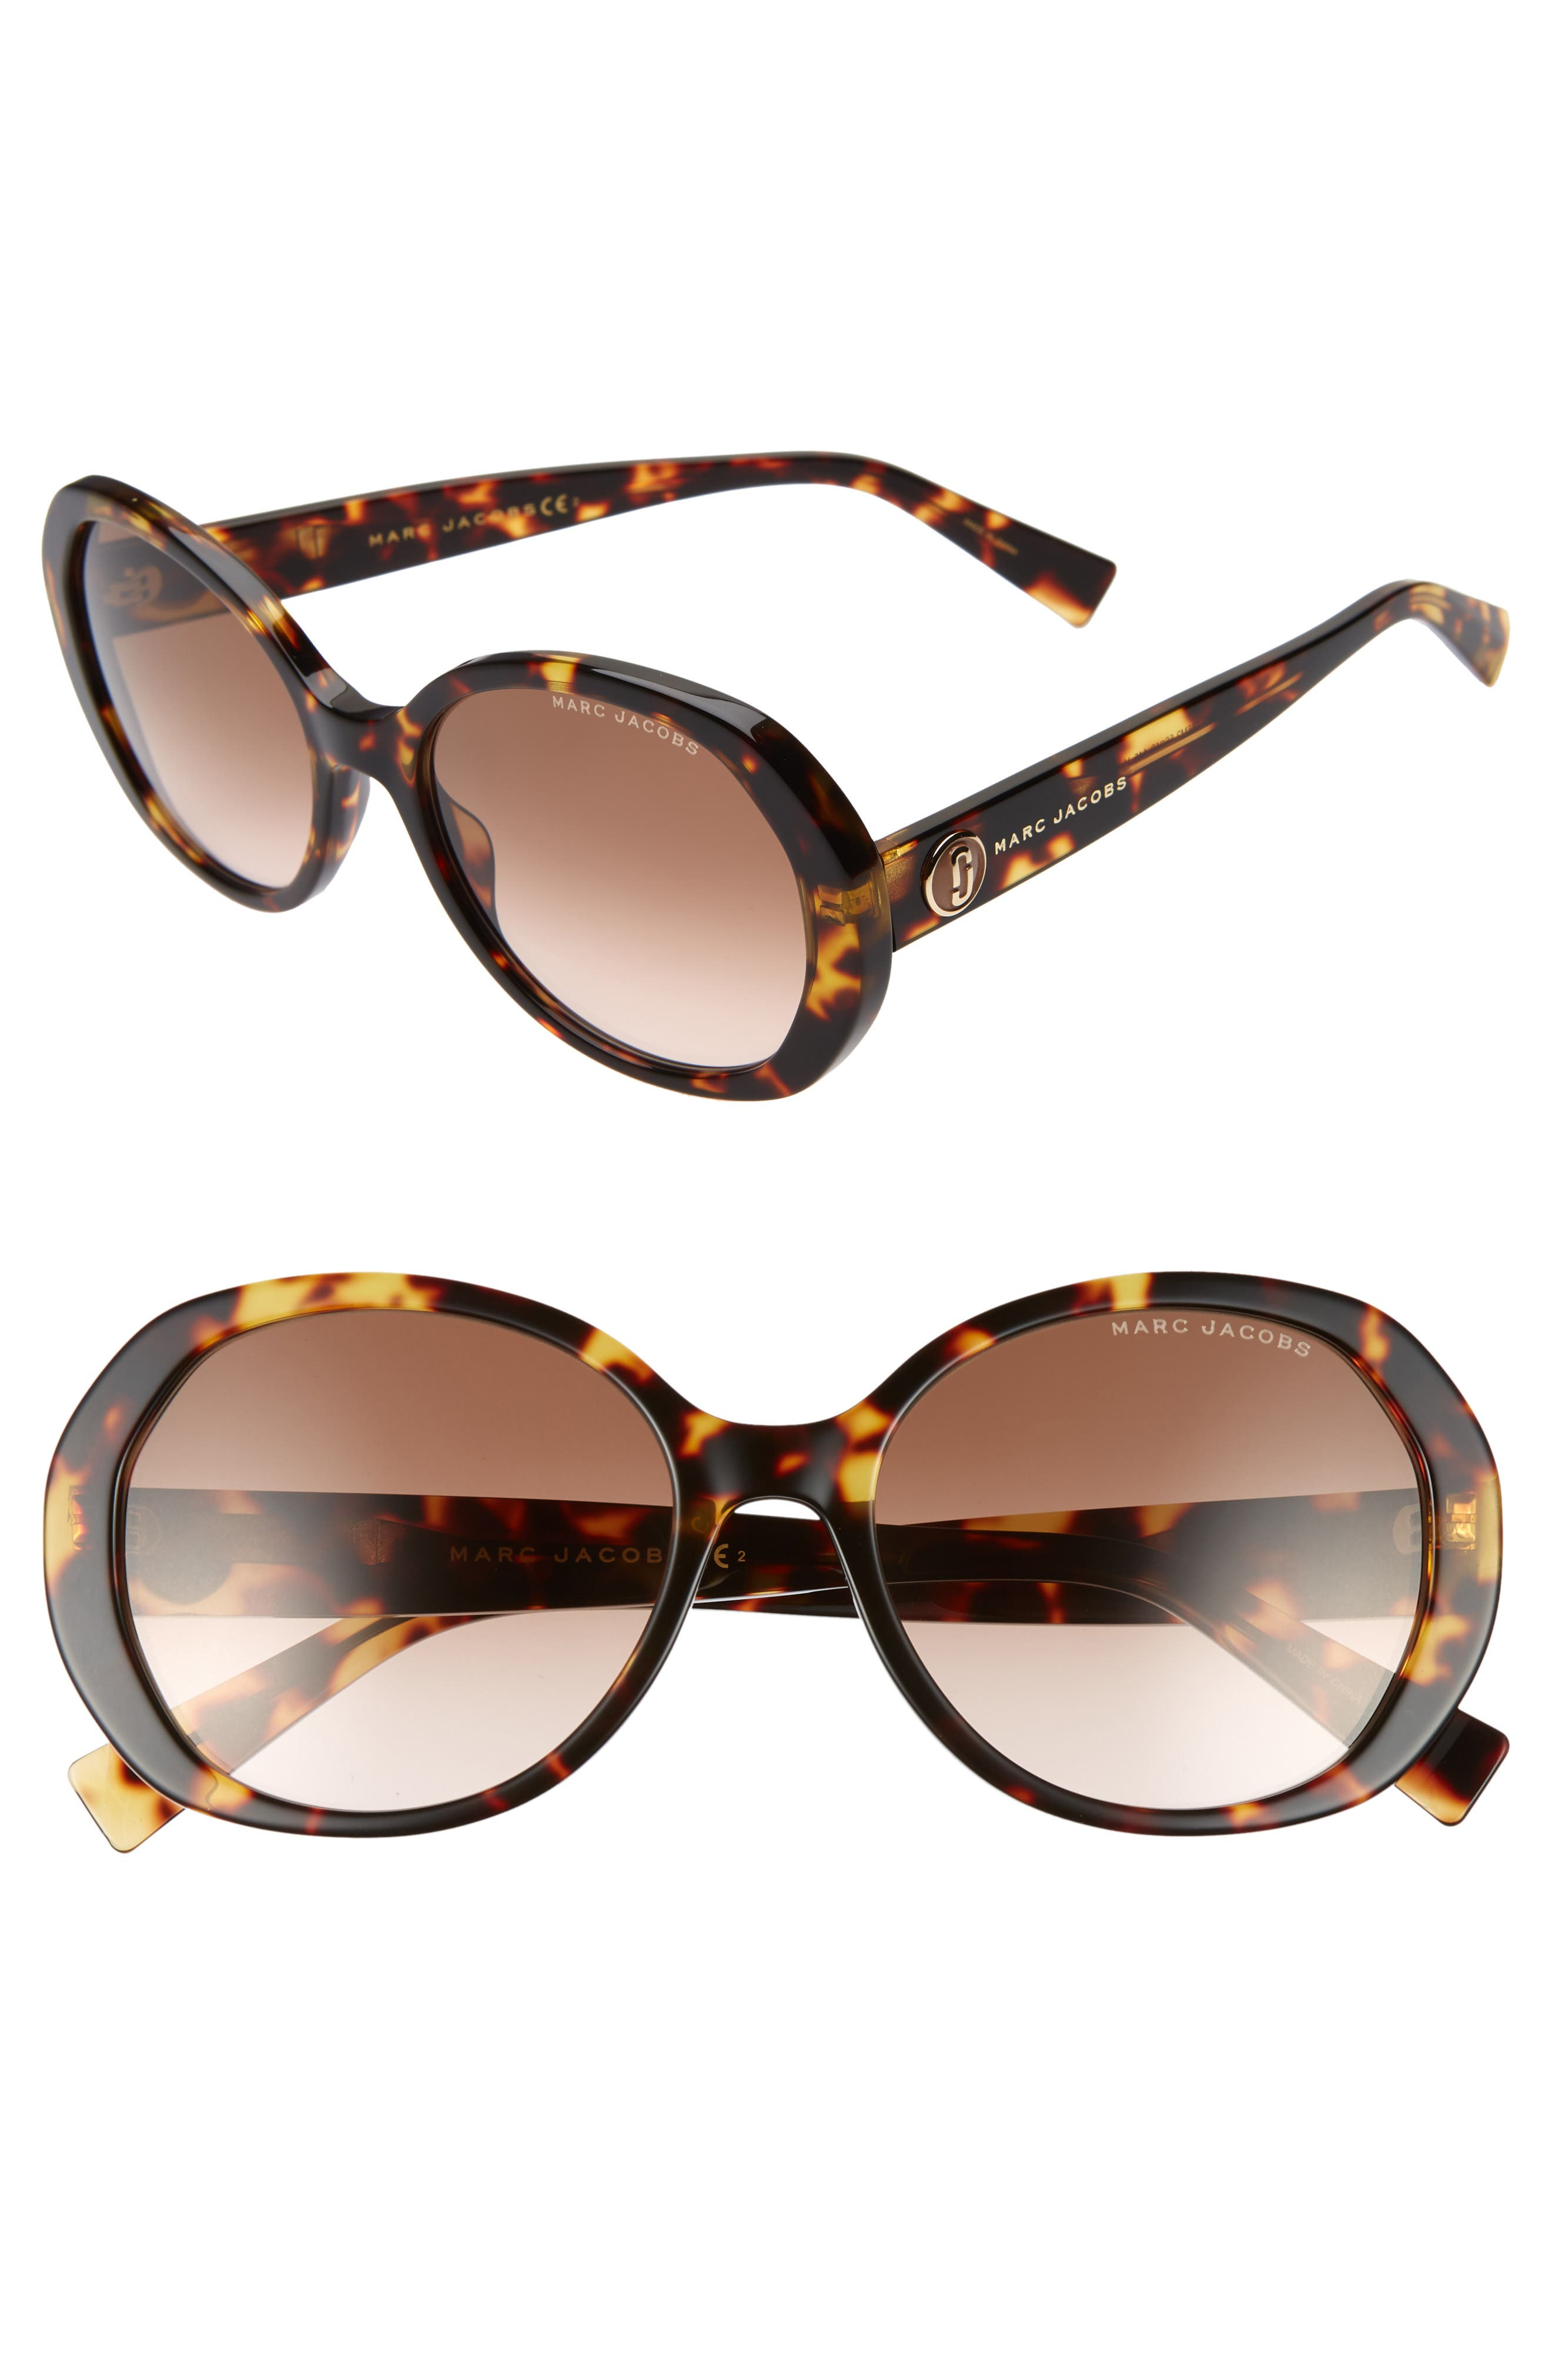 MARC JACOBS 56mm Round Sunglasses, Main, color, BLACK DARK HAVANA